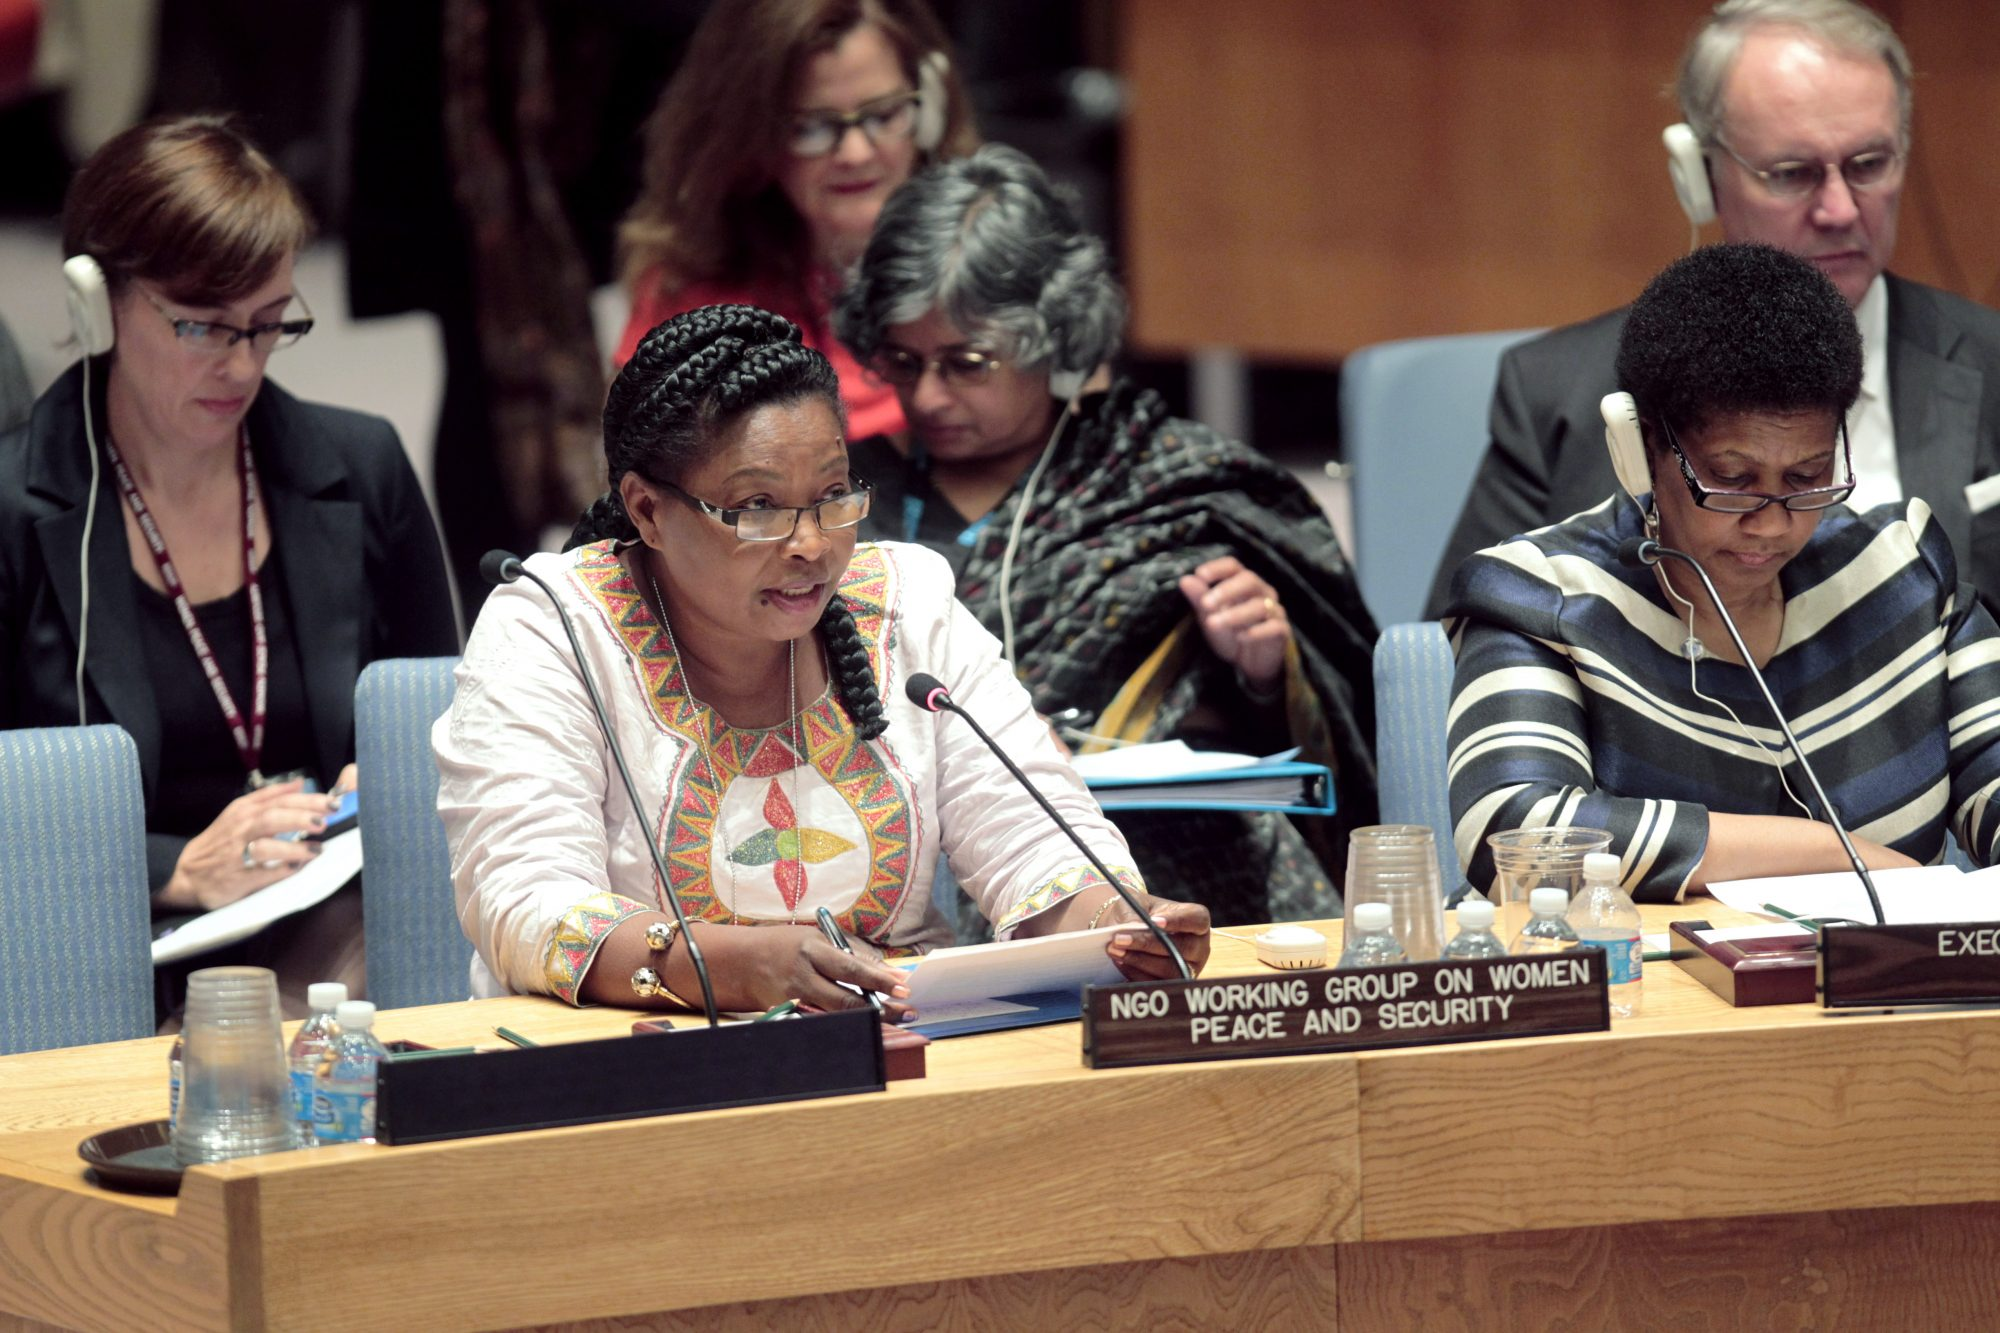 Statement by Ms. Brigitte Balipou at UN Security Council Open Debate on Women, Peace and Security